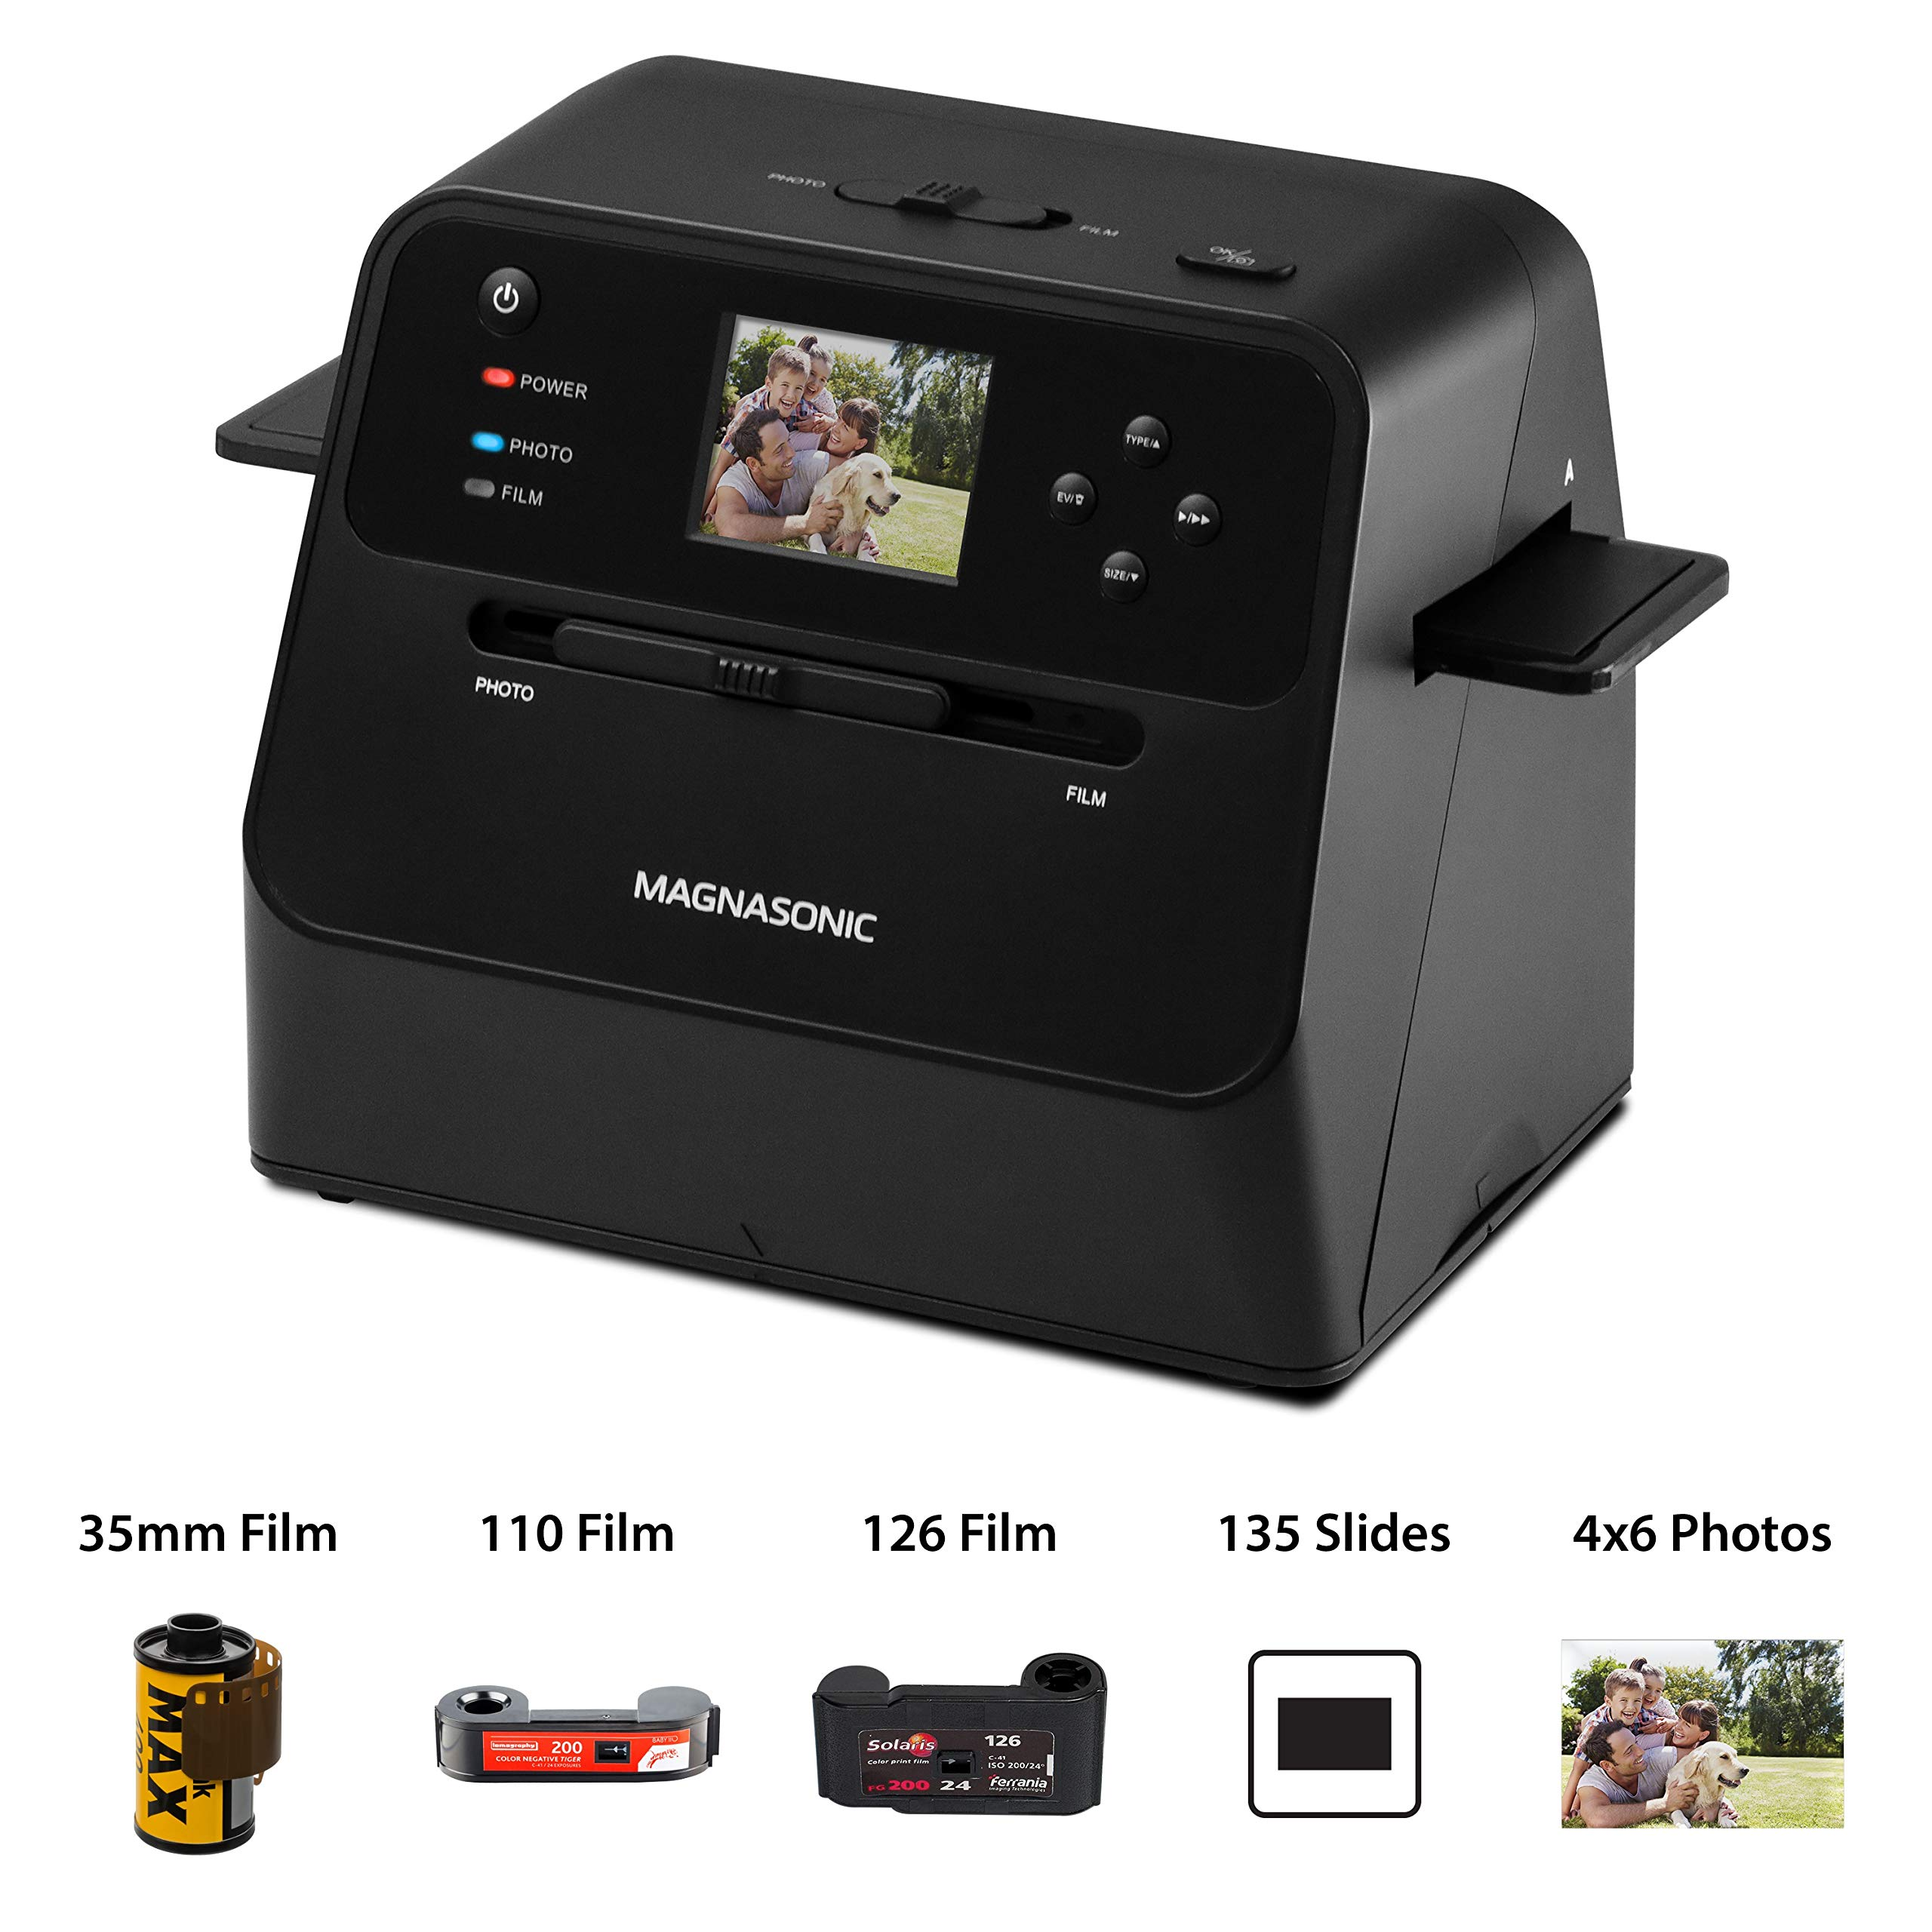 Magnasonic All-in-One Film & Photo Scanner, 14MP Resolution, Converts 4x6 Photos, 35mm/110/126/Super 8 Film & 135 Slides into Digital JPEGs, Vibrant 2.4'' LCD Screen, Fast Scanning (FS60) by Magnasonic